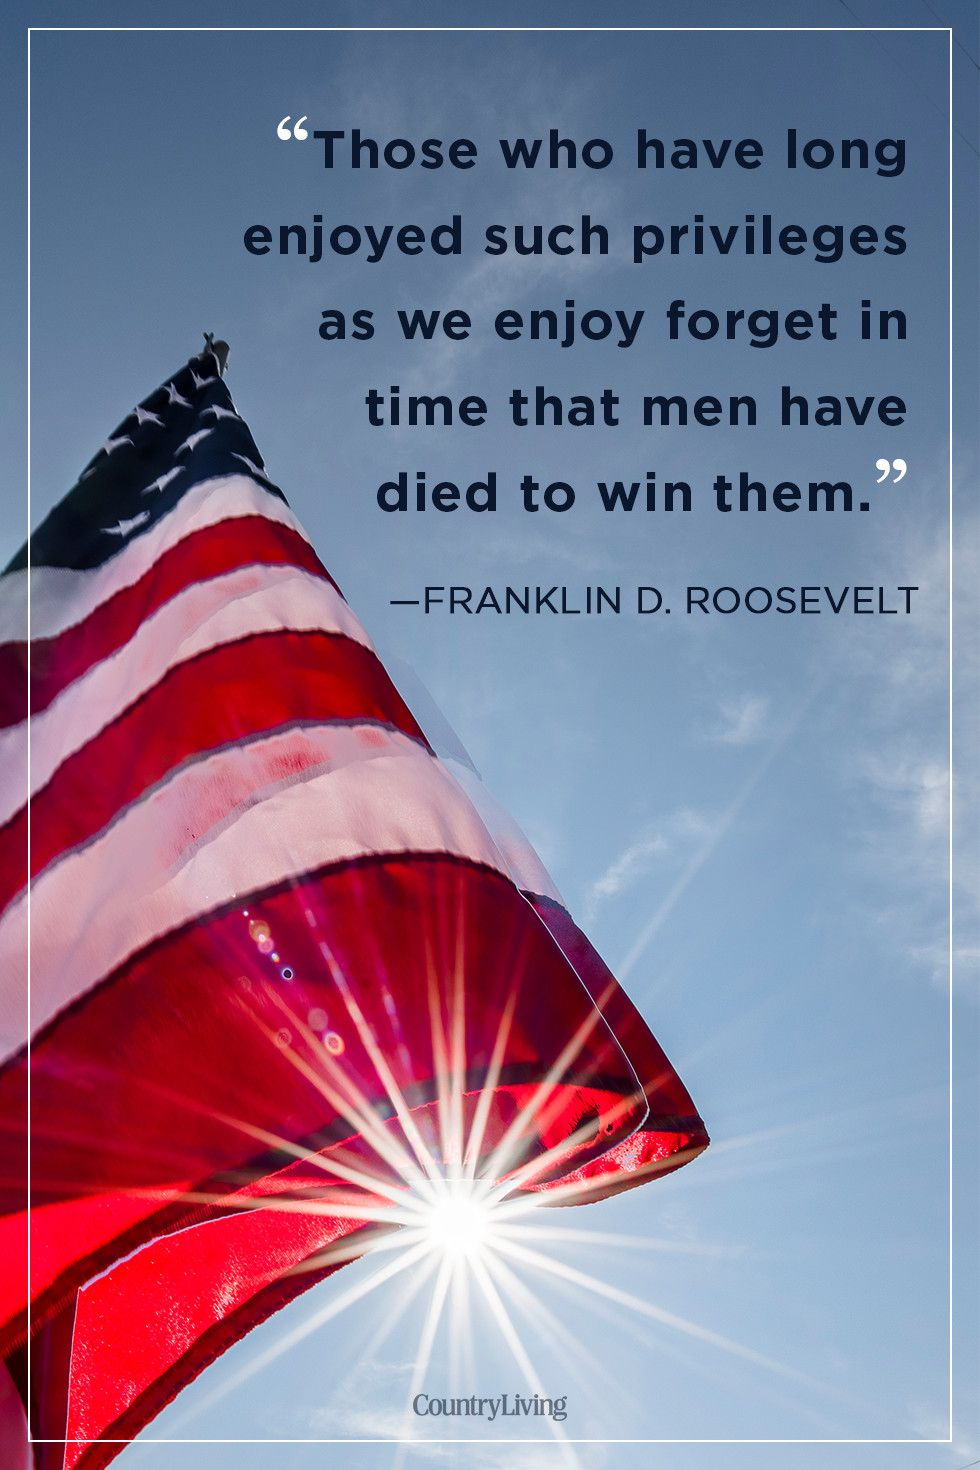 fdr-memorial-day-quote-1525289591.jpg